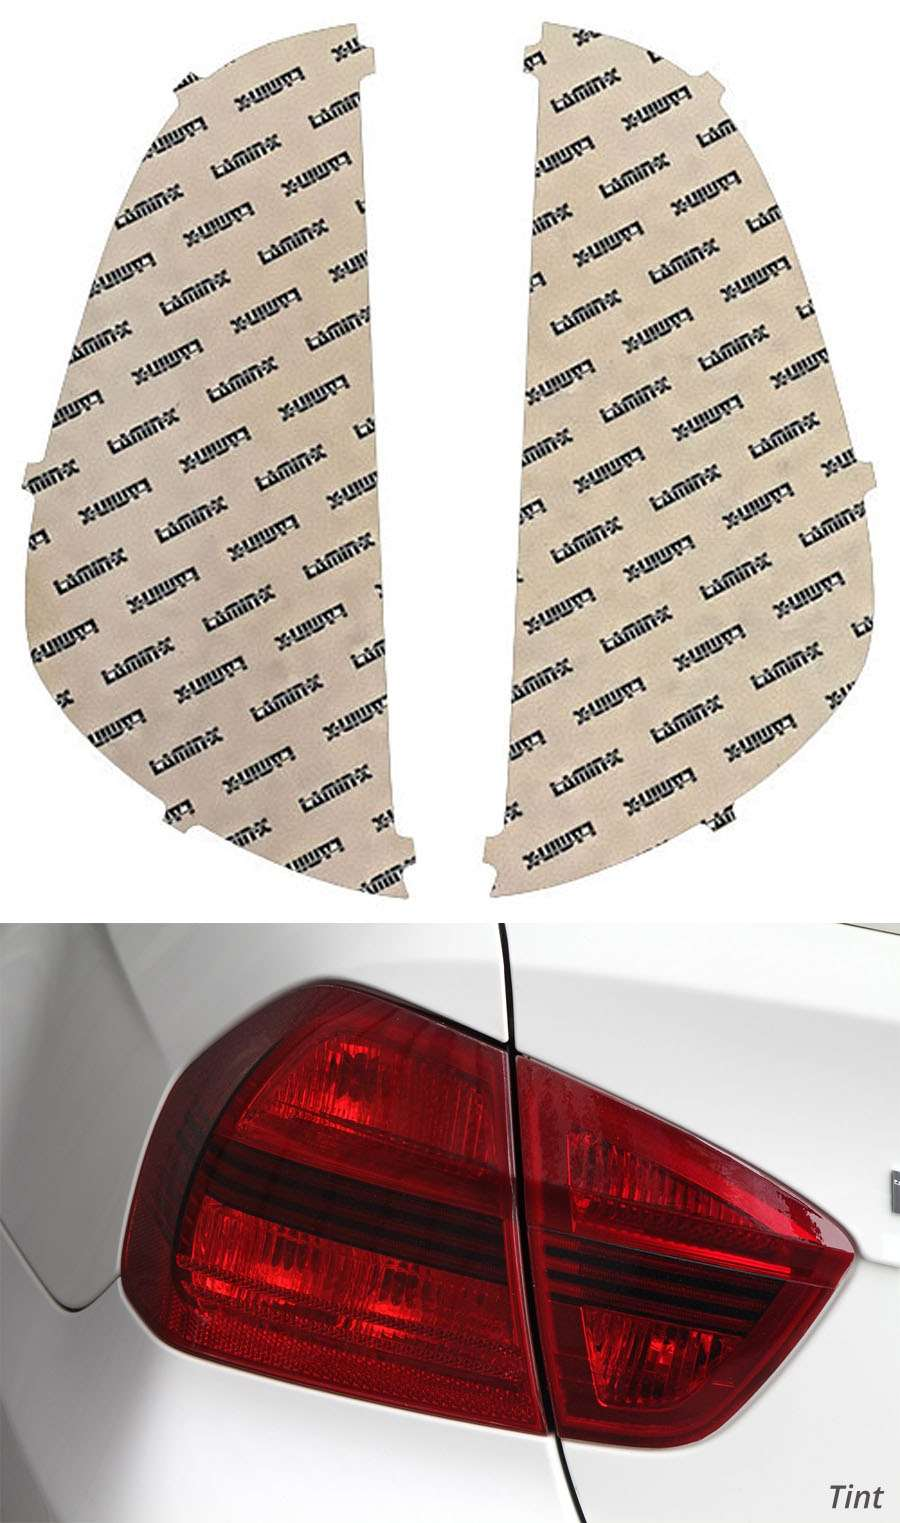 Lamin-X Tail Light Covers - Lamin-X K225